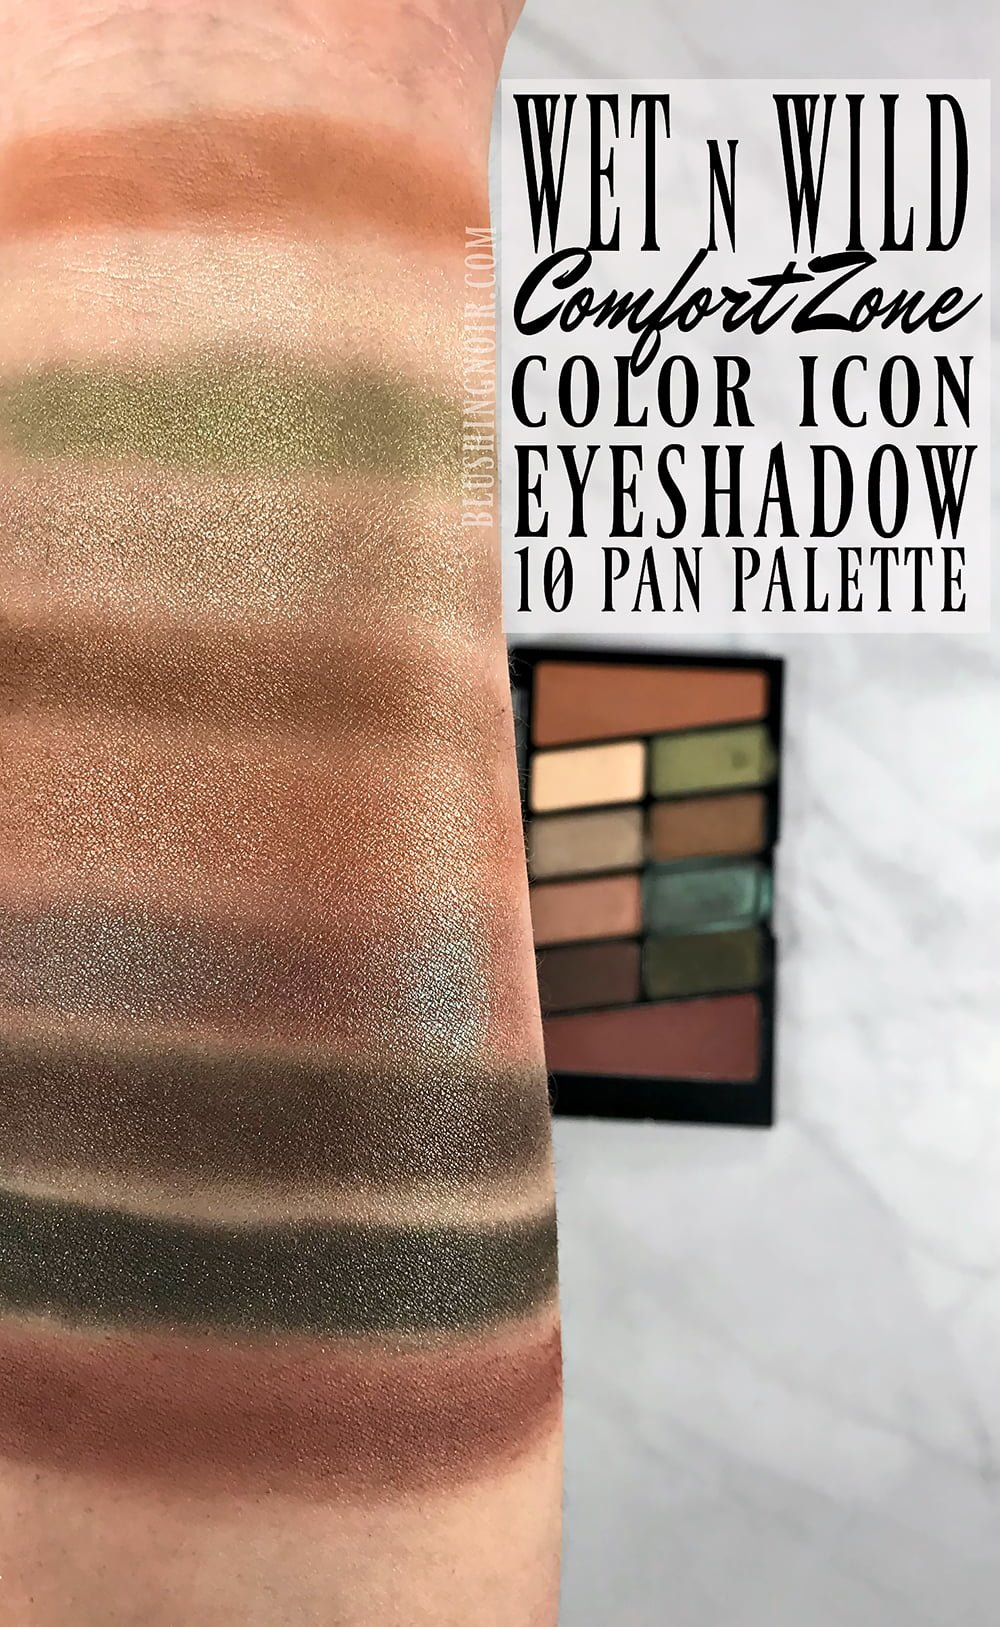 Wet n Wild Comfort Zone Color Icon Eyeshadow 10 Pan Palette swatches review swatch pics photos new 2017